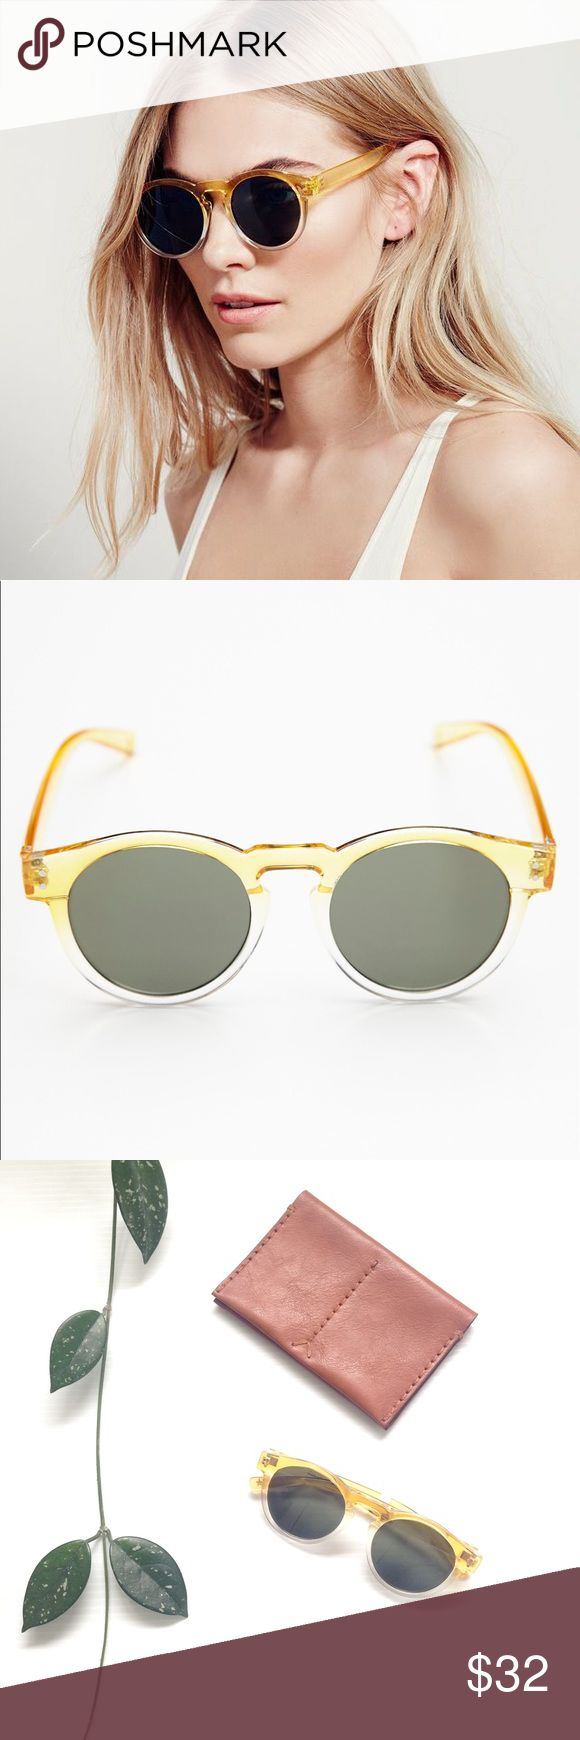 {NEW} NWT Free People Dixie two-toned sunglasses Hit the beach with this stylish pair of Free People's Dixie sunglasses, two-toned in sunny yellow-orange and clear! A perfect accent to that tribal maxi skirt and white tank! NWT! Free People Accessories Sunglasses